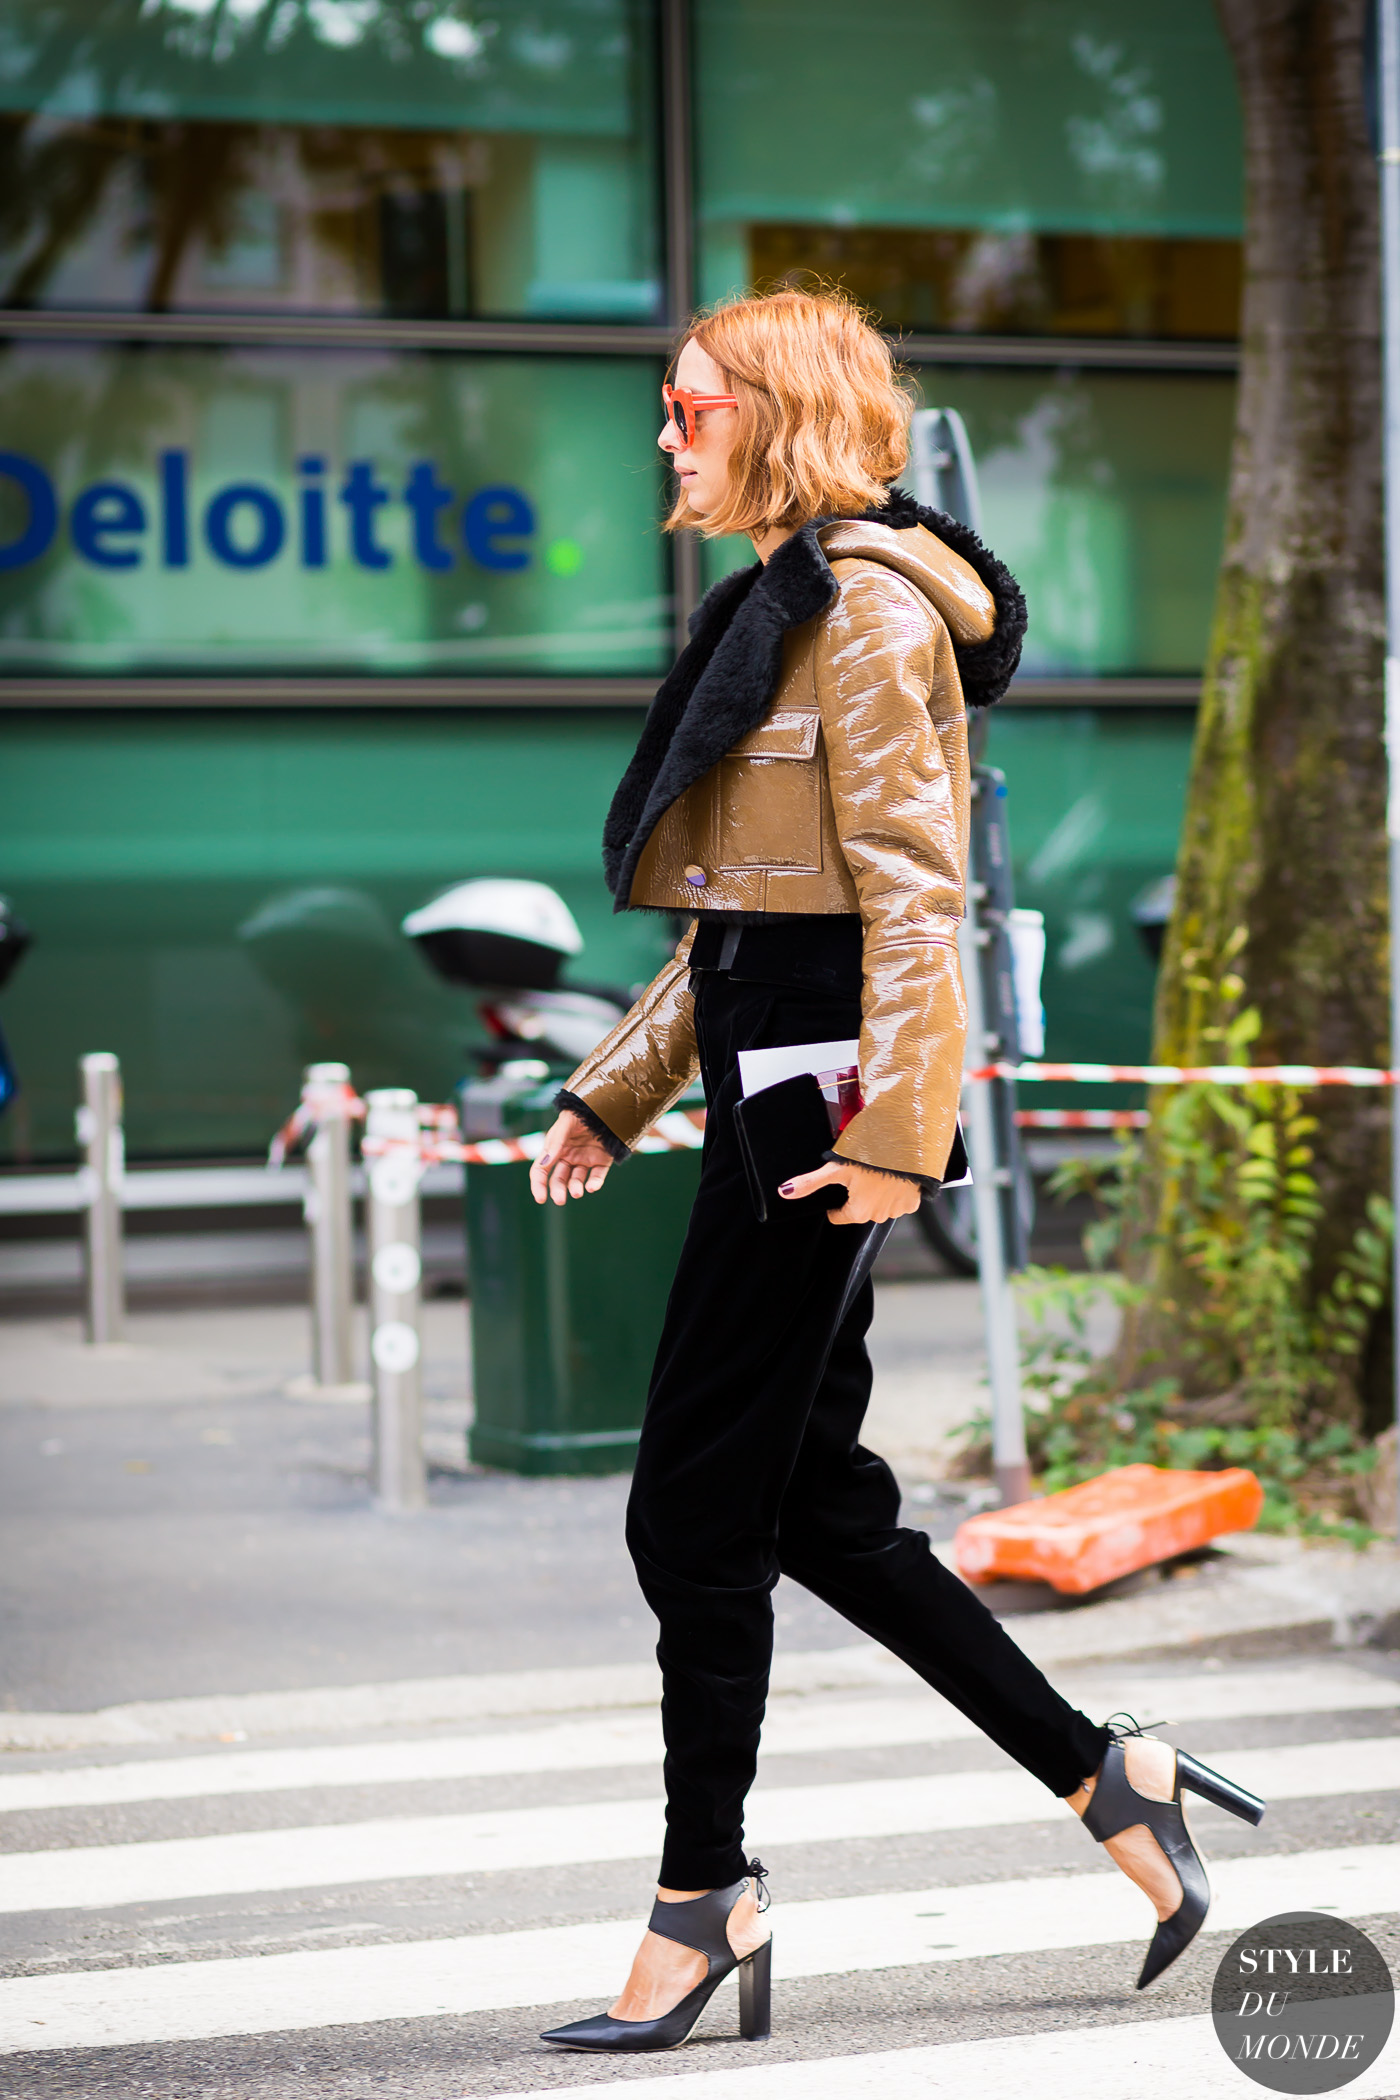 Candela Novembre Street Style Street Fashion Streetsnaps by STYLEDUMONDE Street Style Fashion Photography